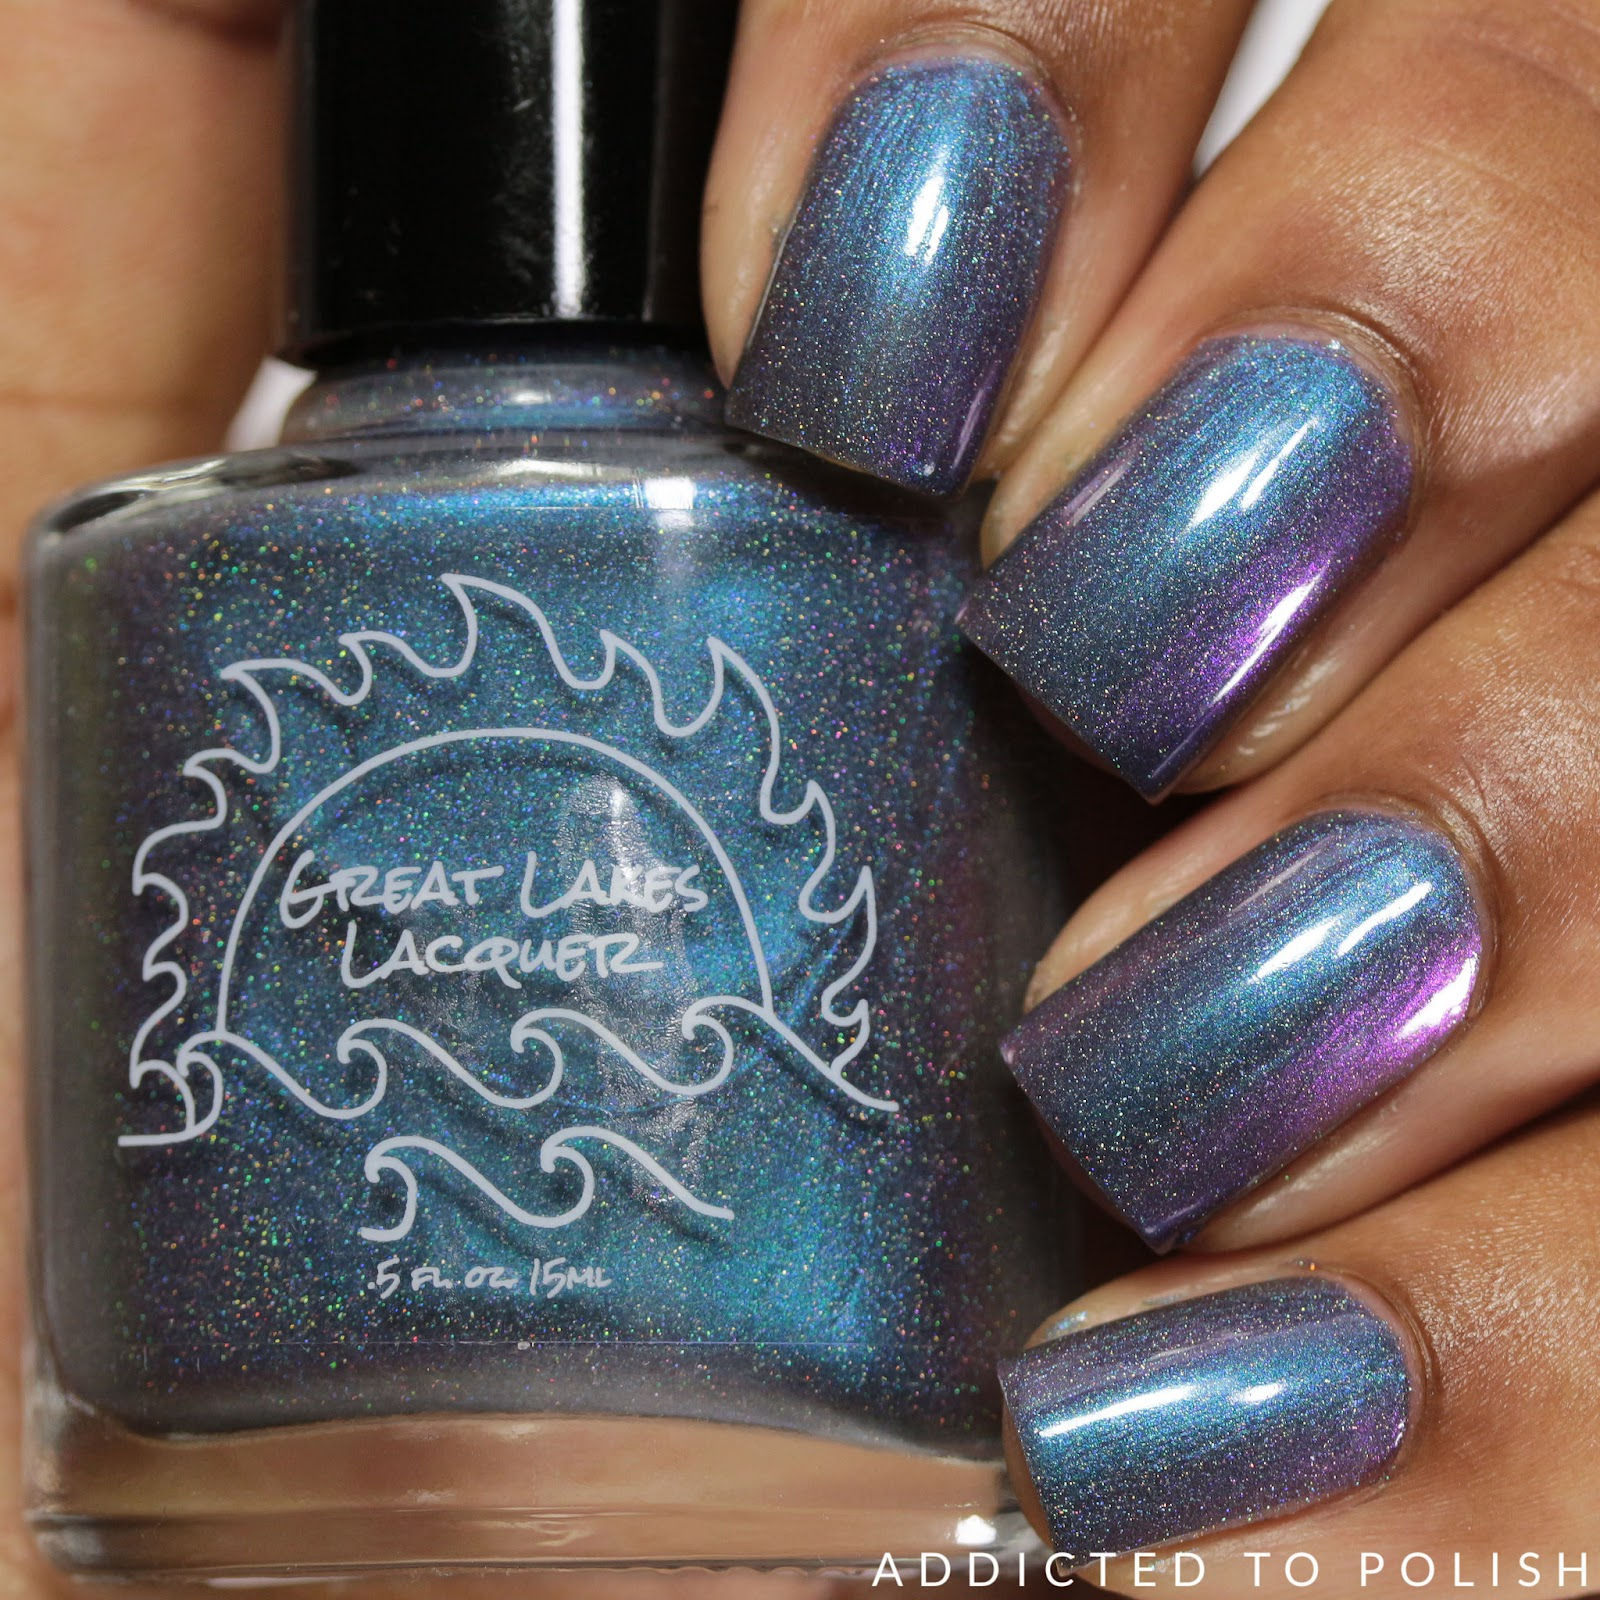 Great Lakes Lacquer Coney Island Queen